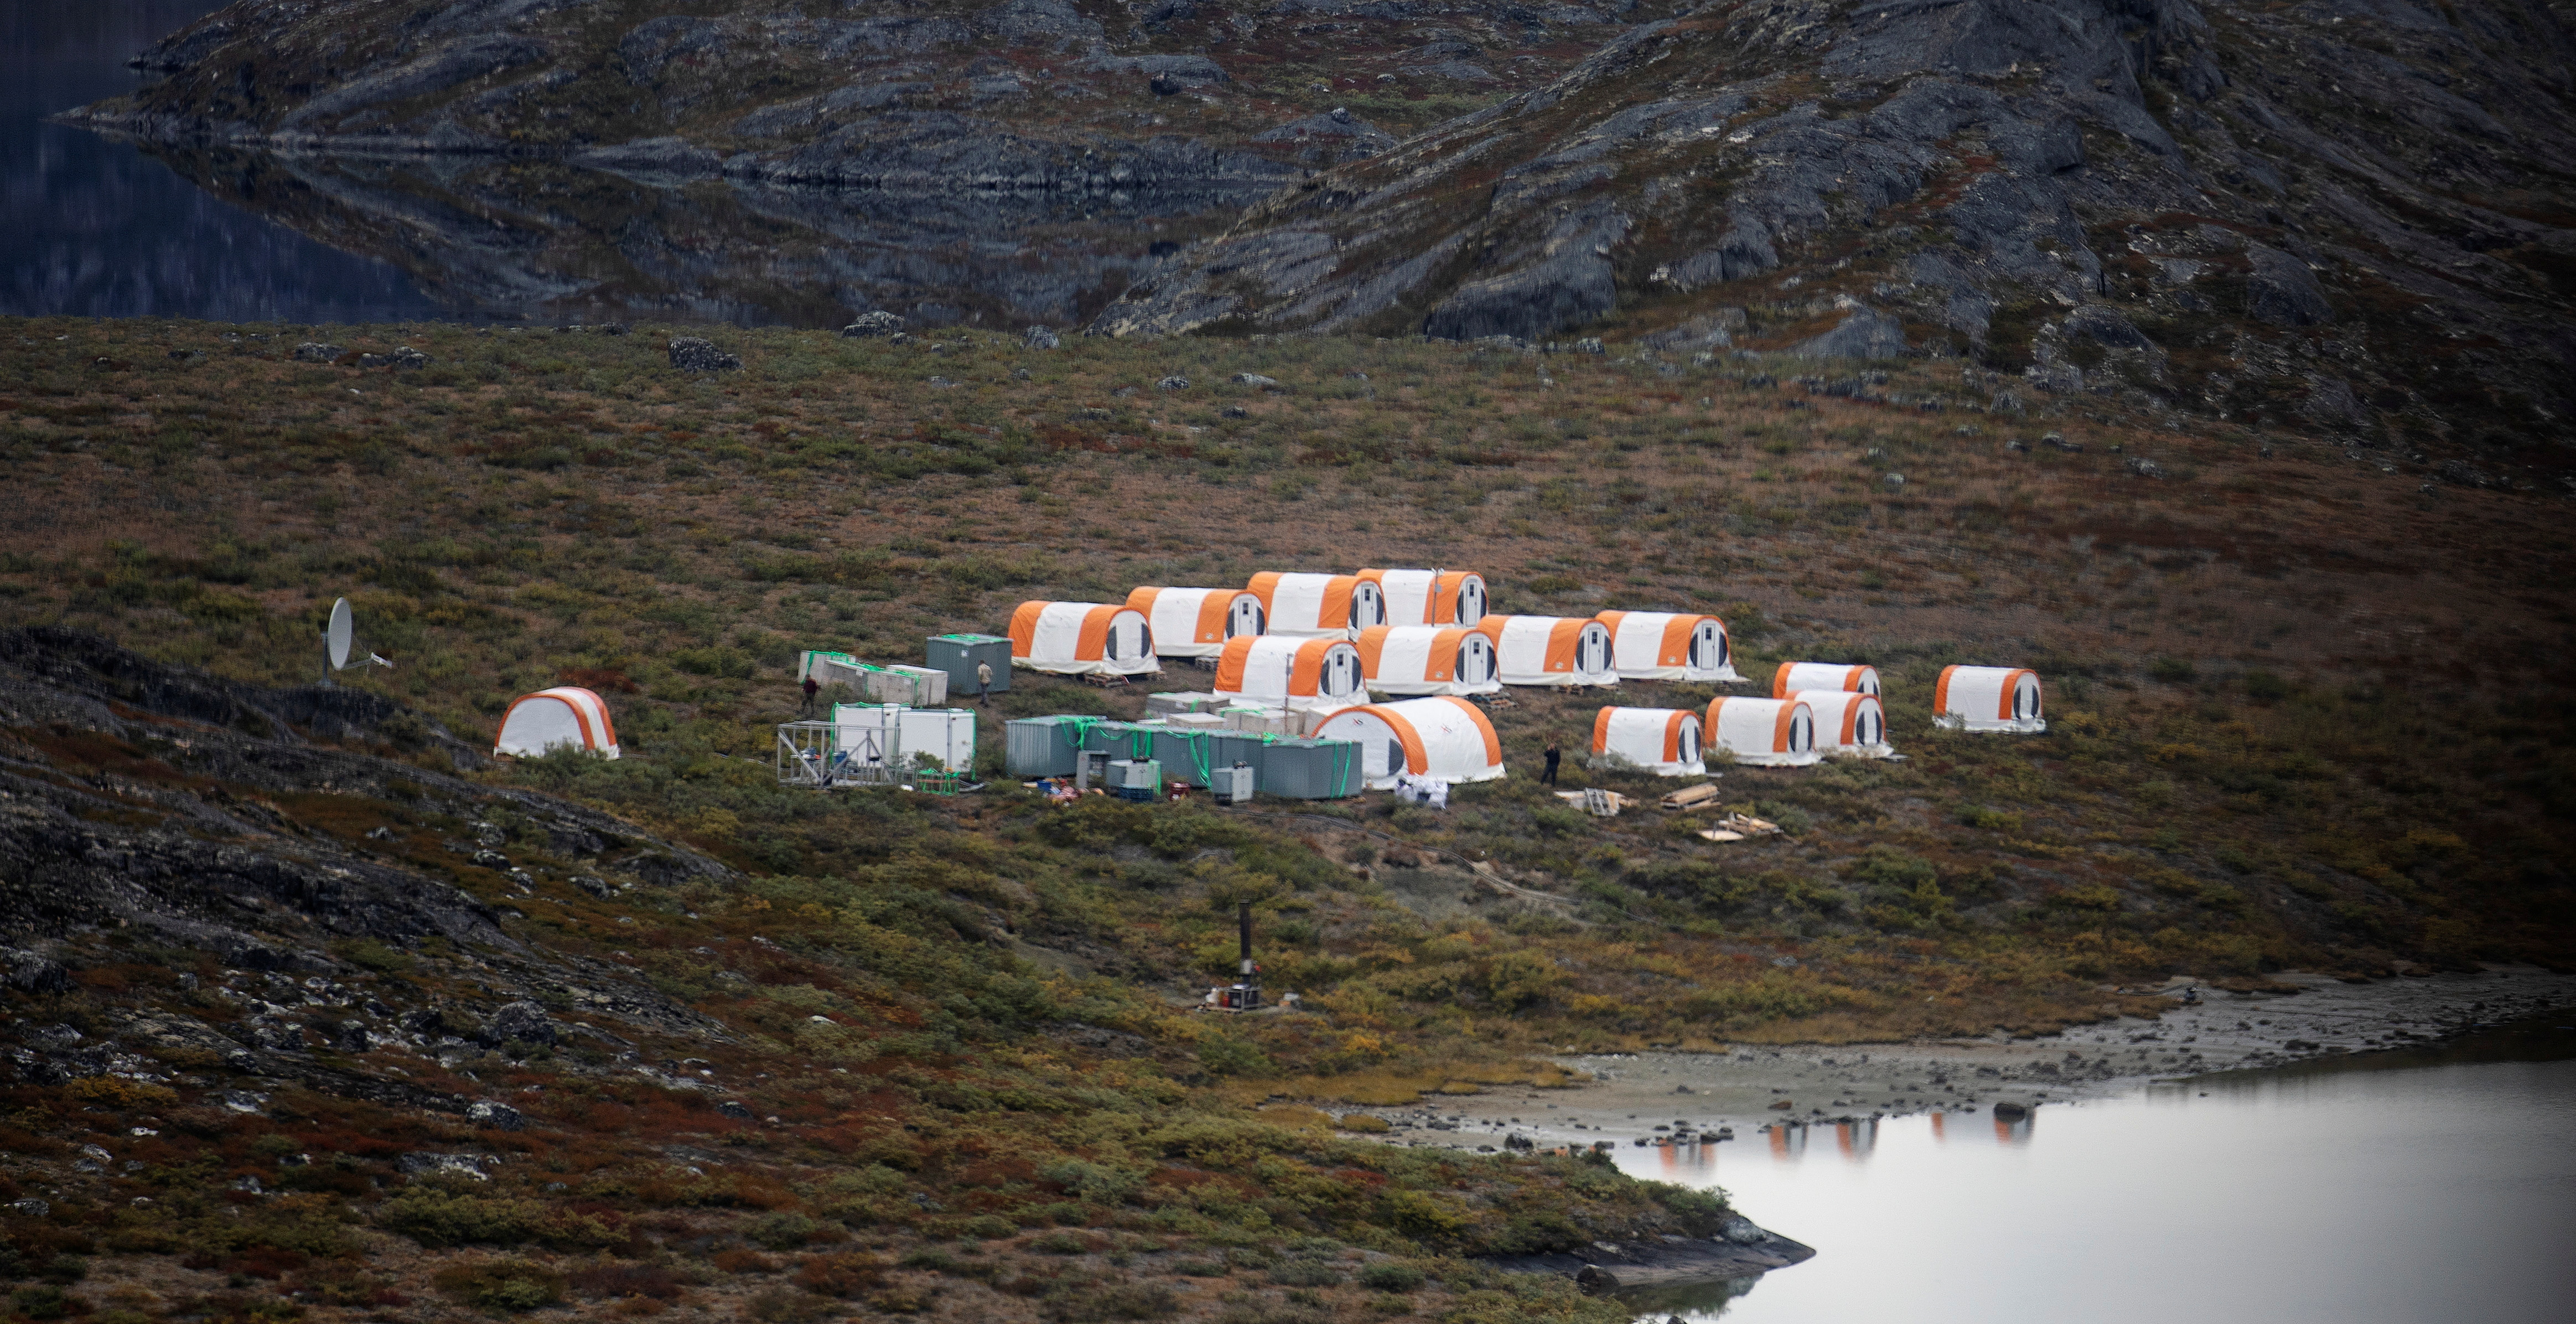 The camp of an exploration site of an anorthosite deposit is pictured close to the Qeqertarsuatsiaat fjord, Greenland, September 11, 2021. Picture taken September 11, 2021.   REUTERS/Hannibal Hanschke